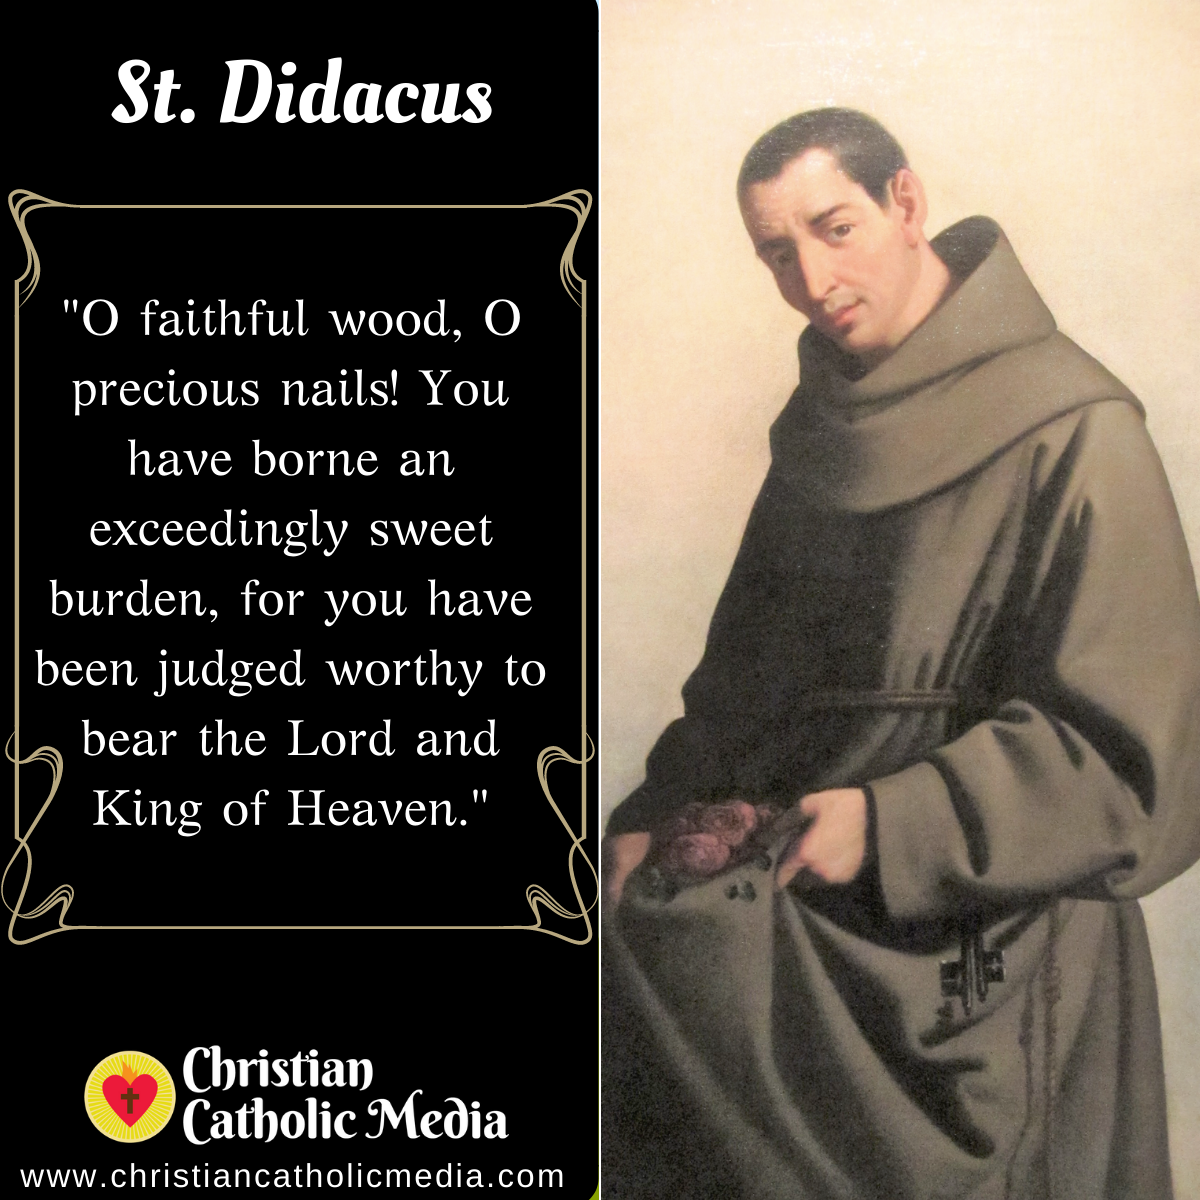 St. Didacus - Saturday November 7, 2020